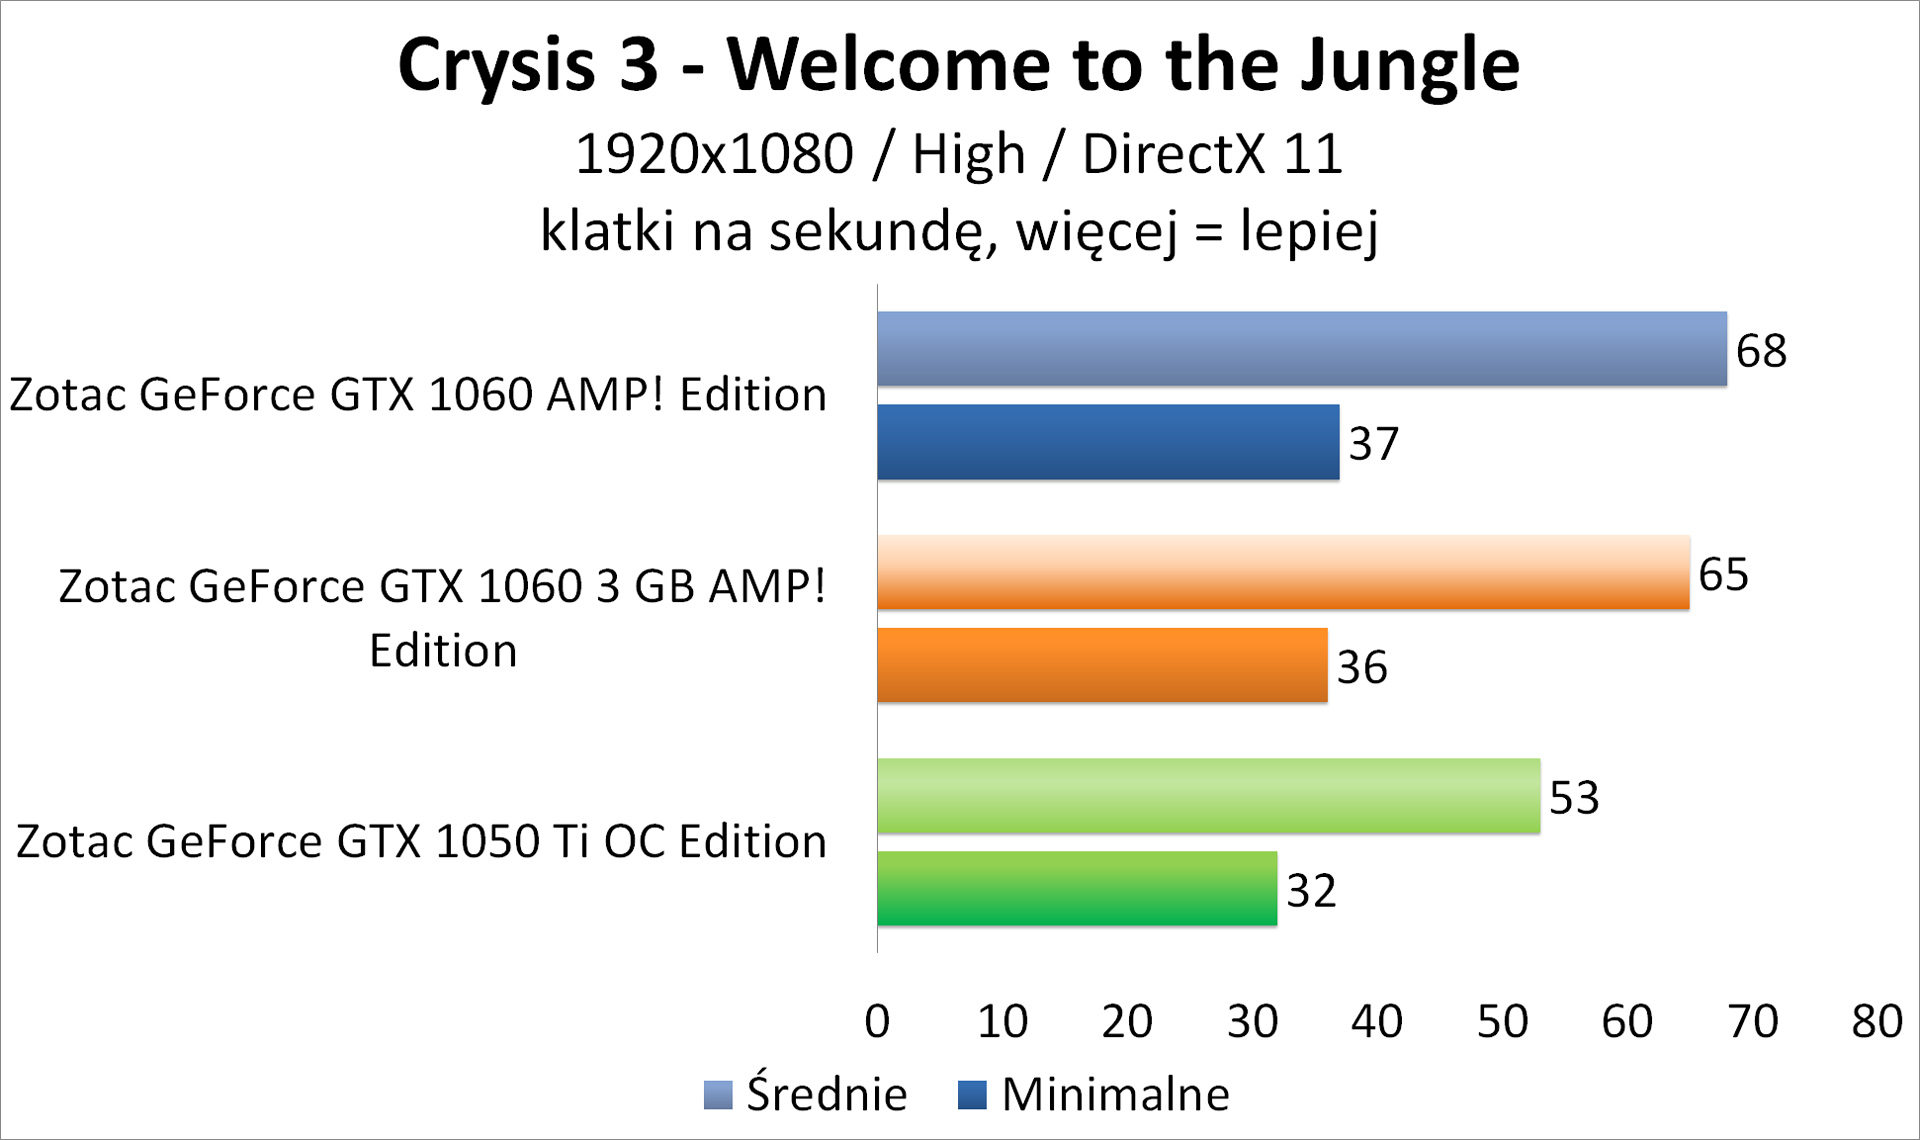 Zotac GeForce GTX 1050 Ti OC Edition - 3DMark - Crysis 3